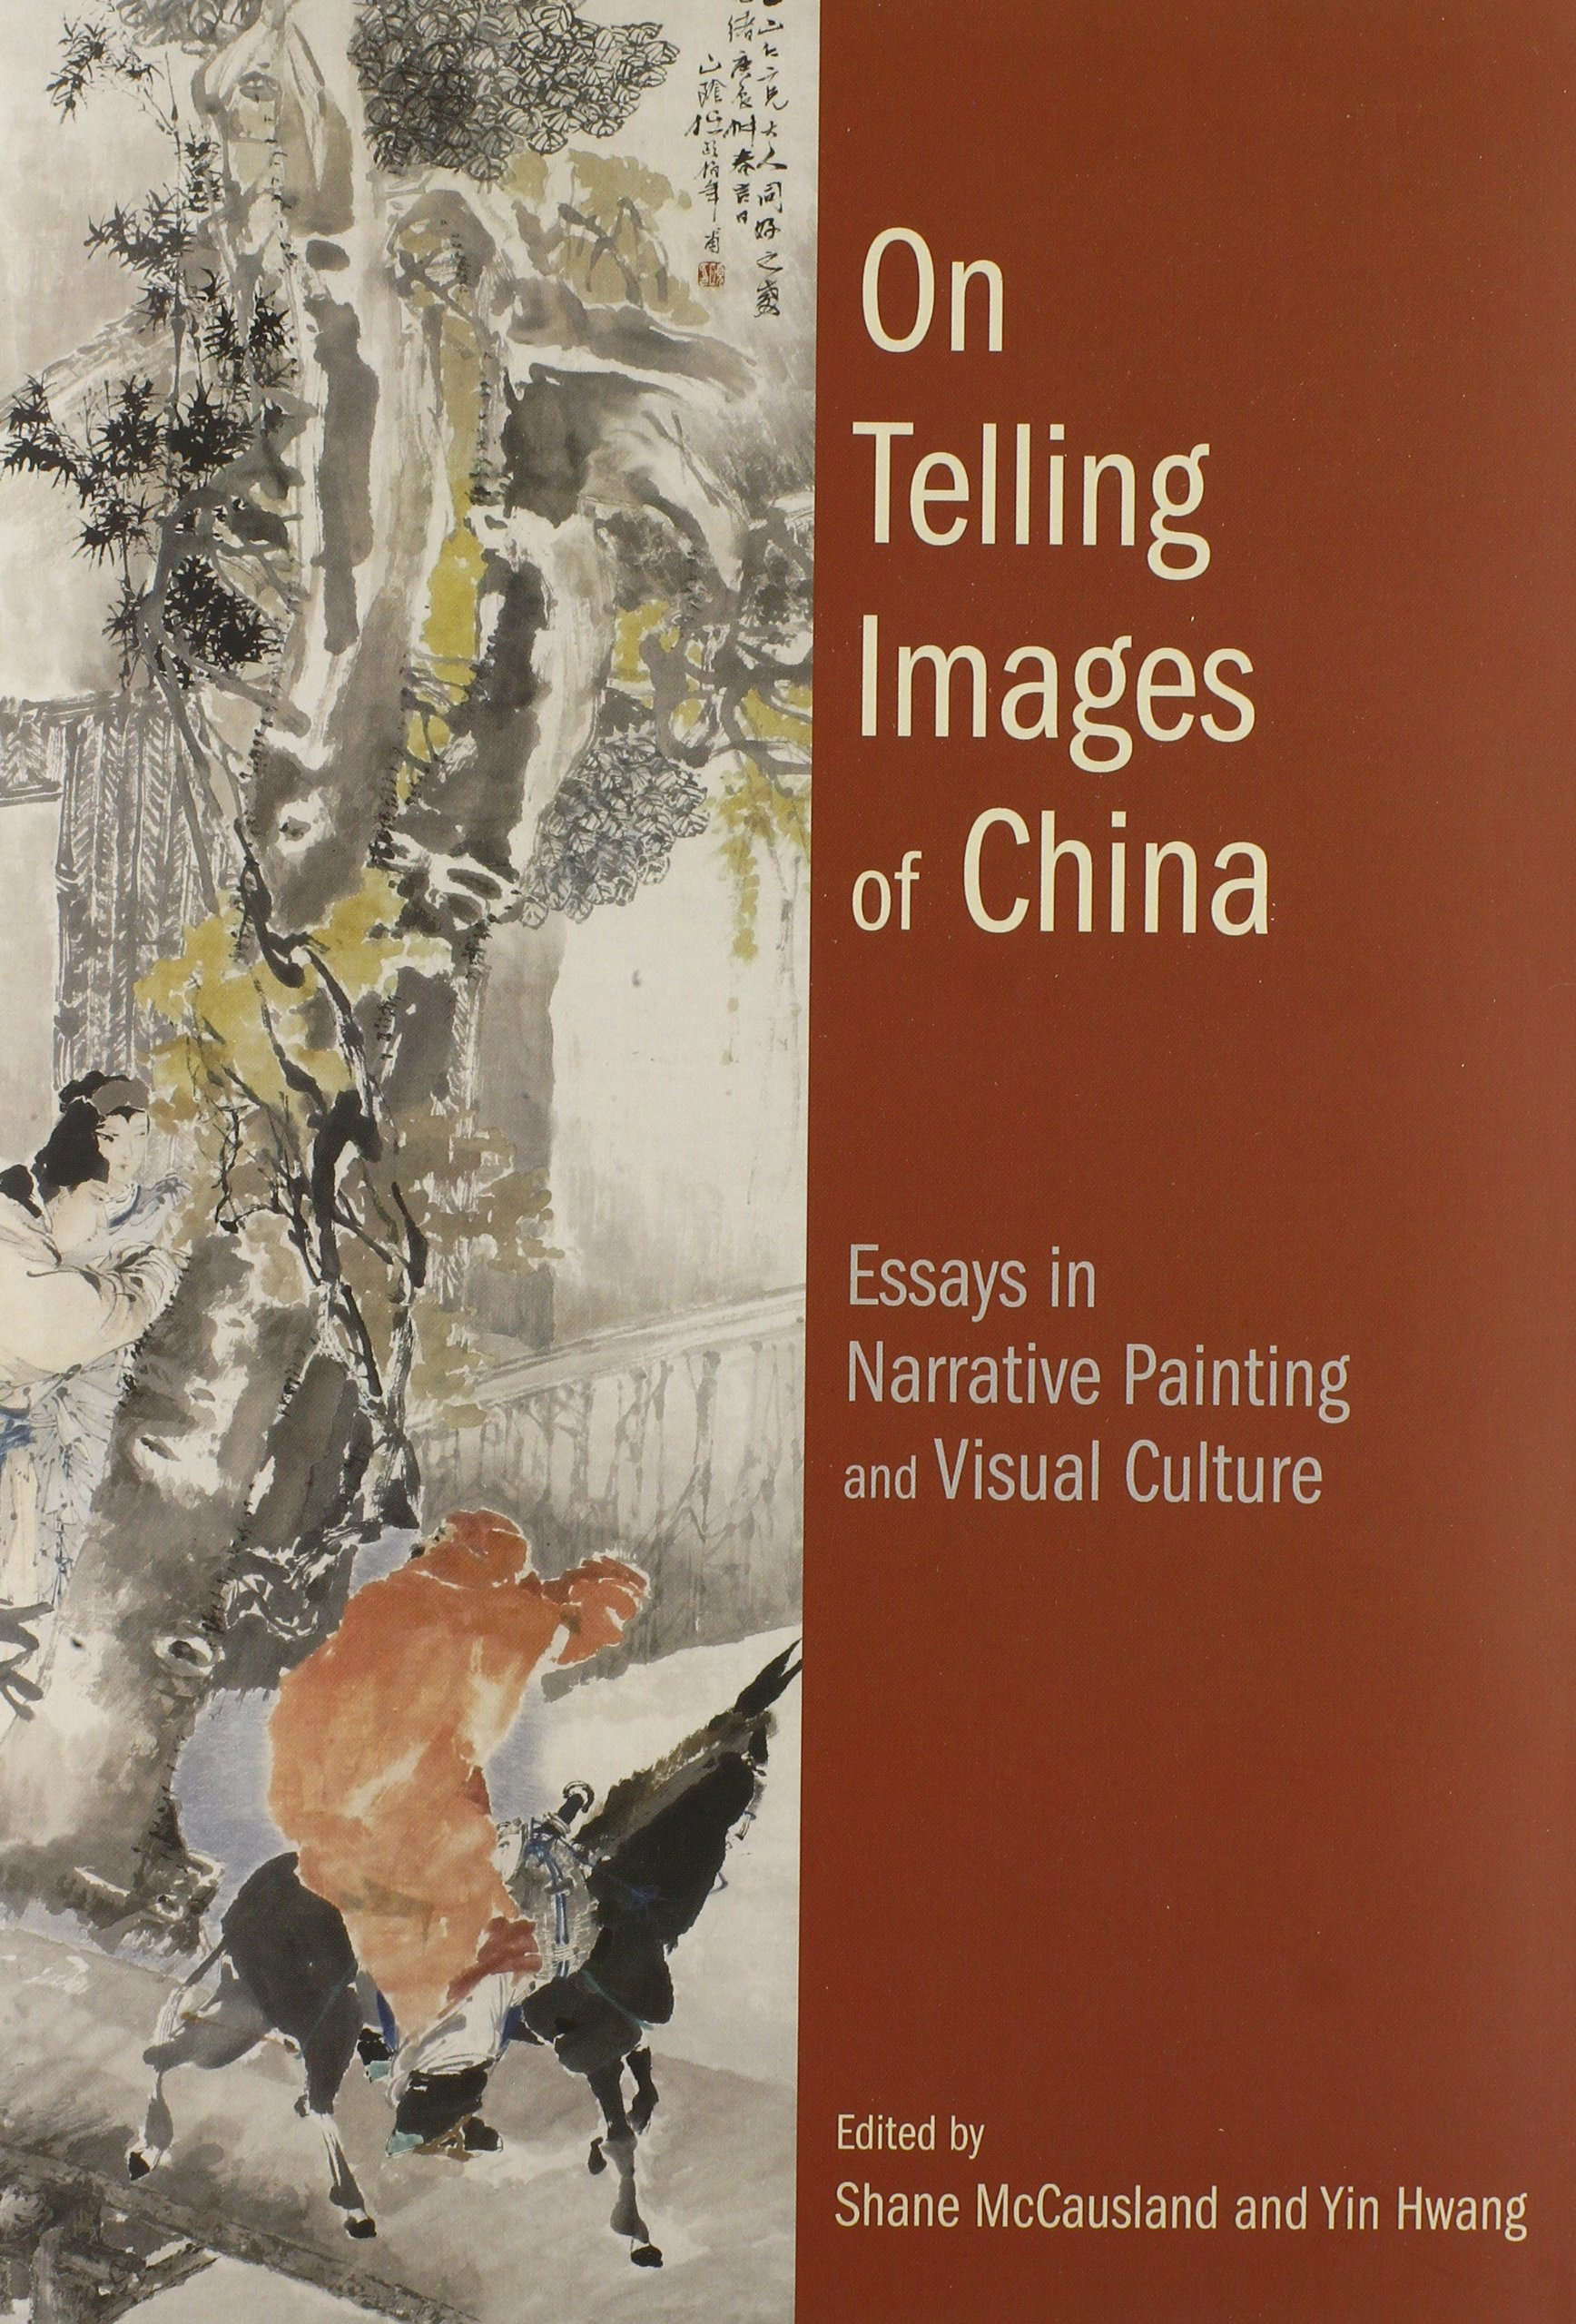 on telling images of essays in narrative painting and on telling images of essays in narrative painting and visual culture shane mccausland yin hwang 9789888139439 com books